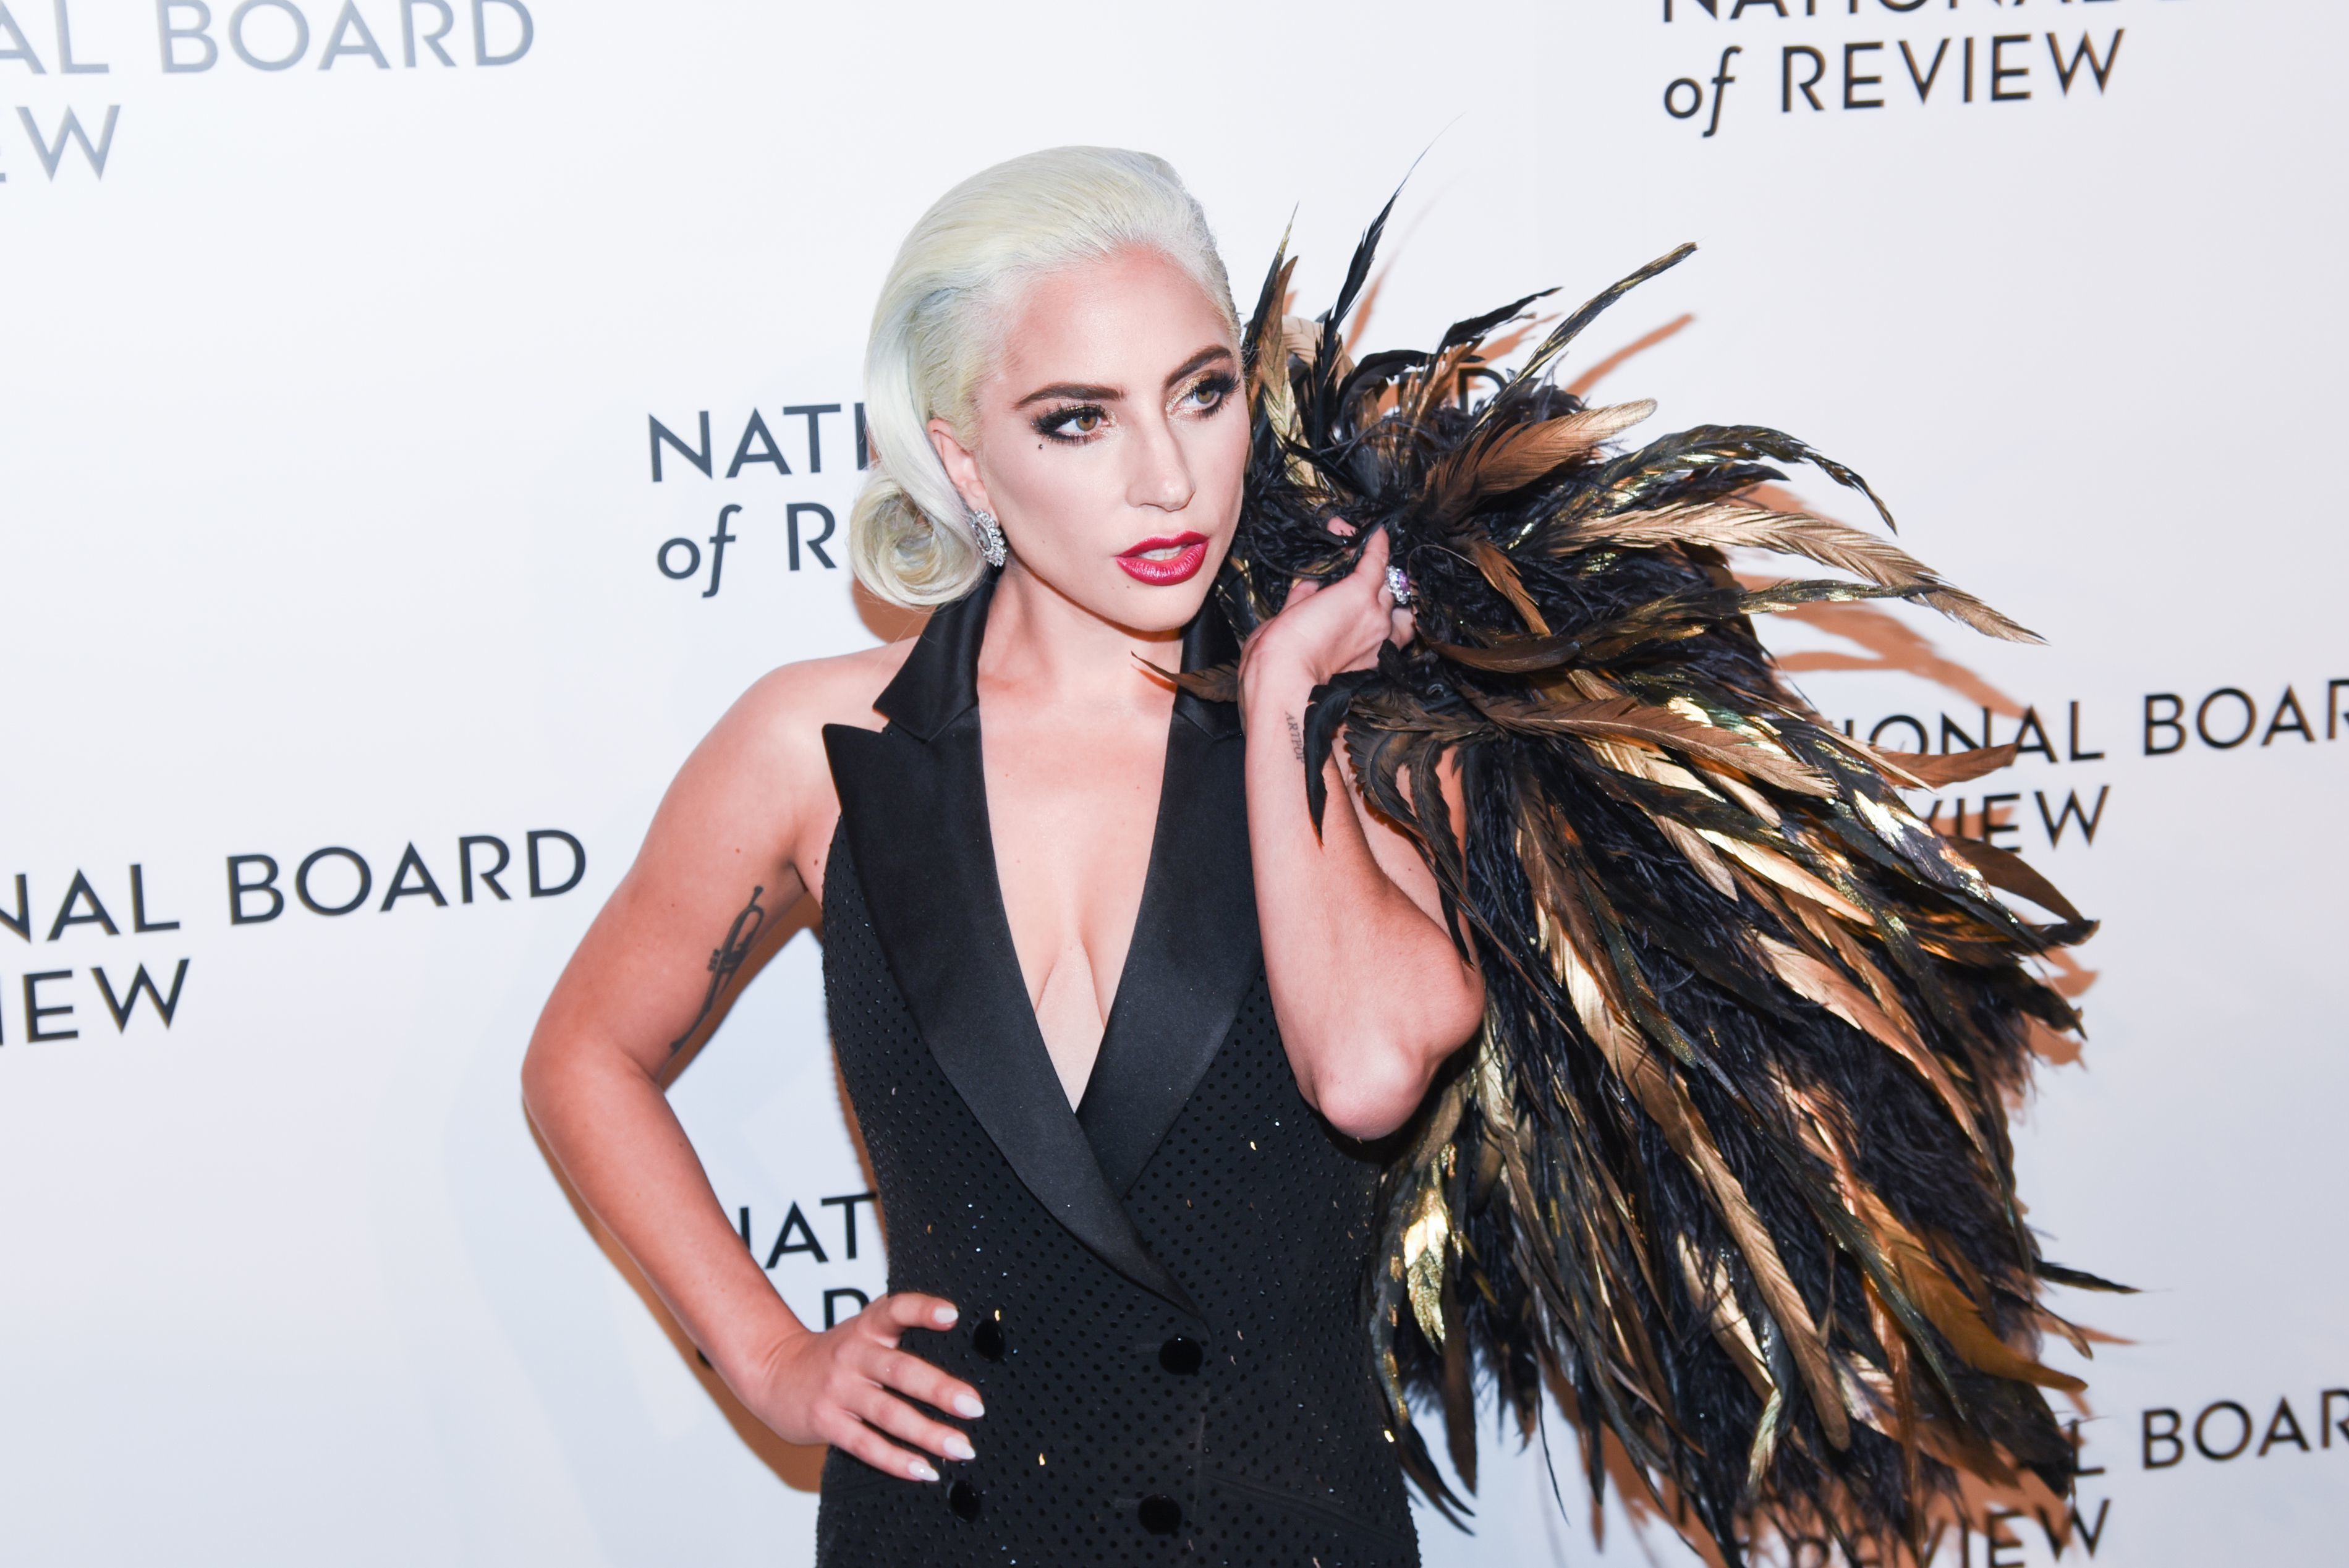 Lady Gaga arrives at the National Board of Review Awards Gala in New York City on Jan. 8, 2019.